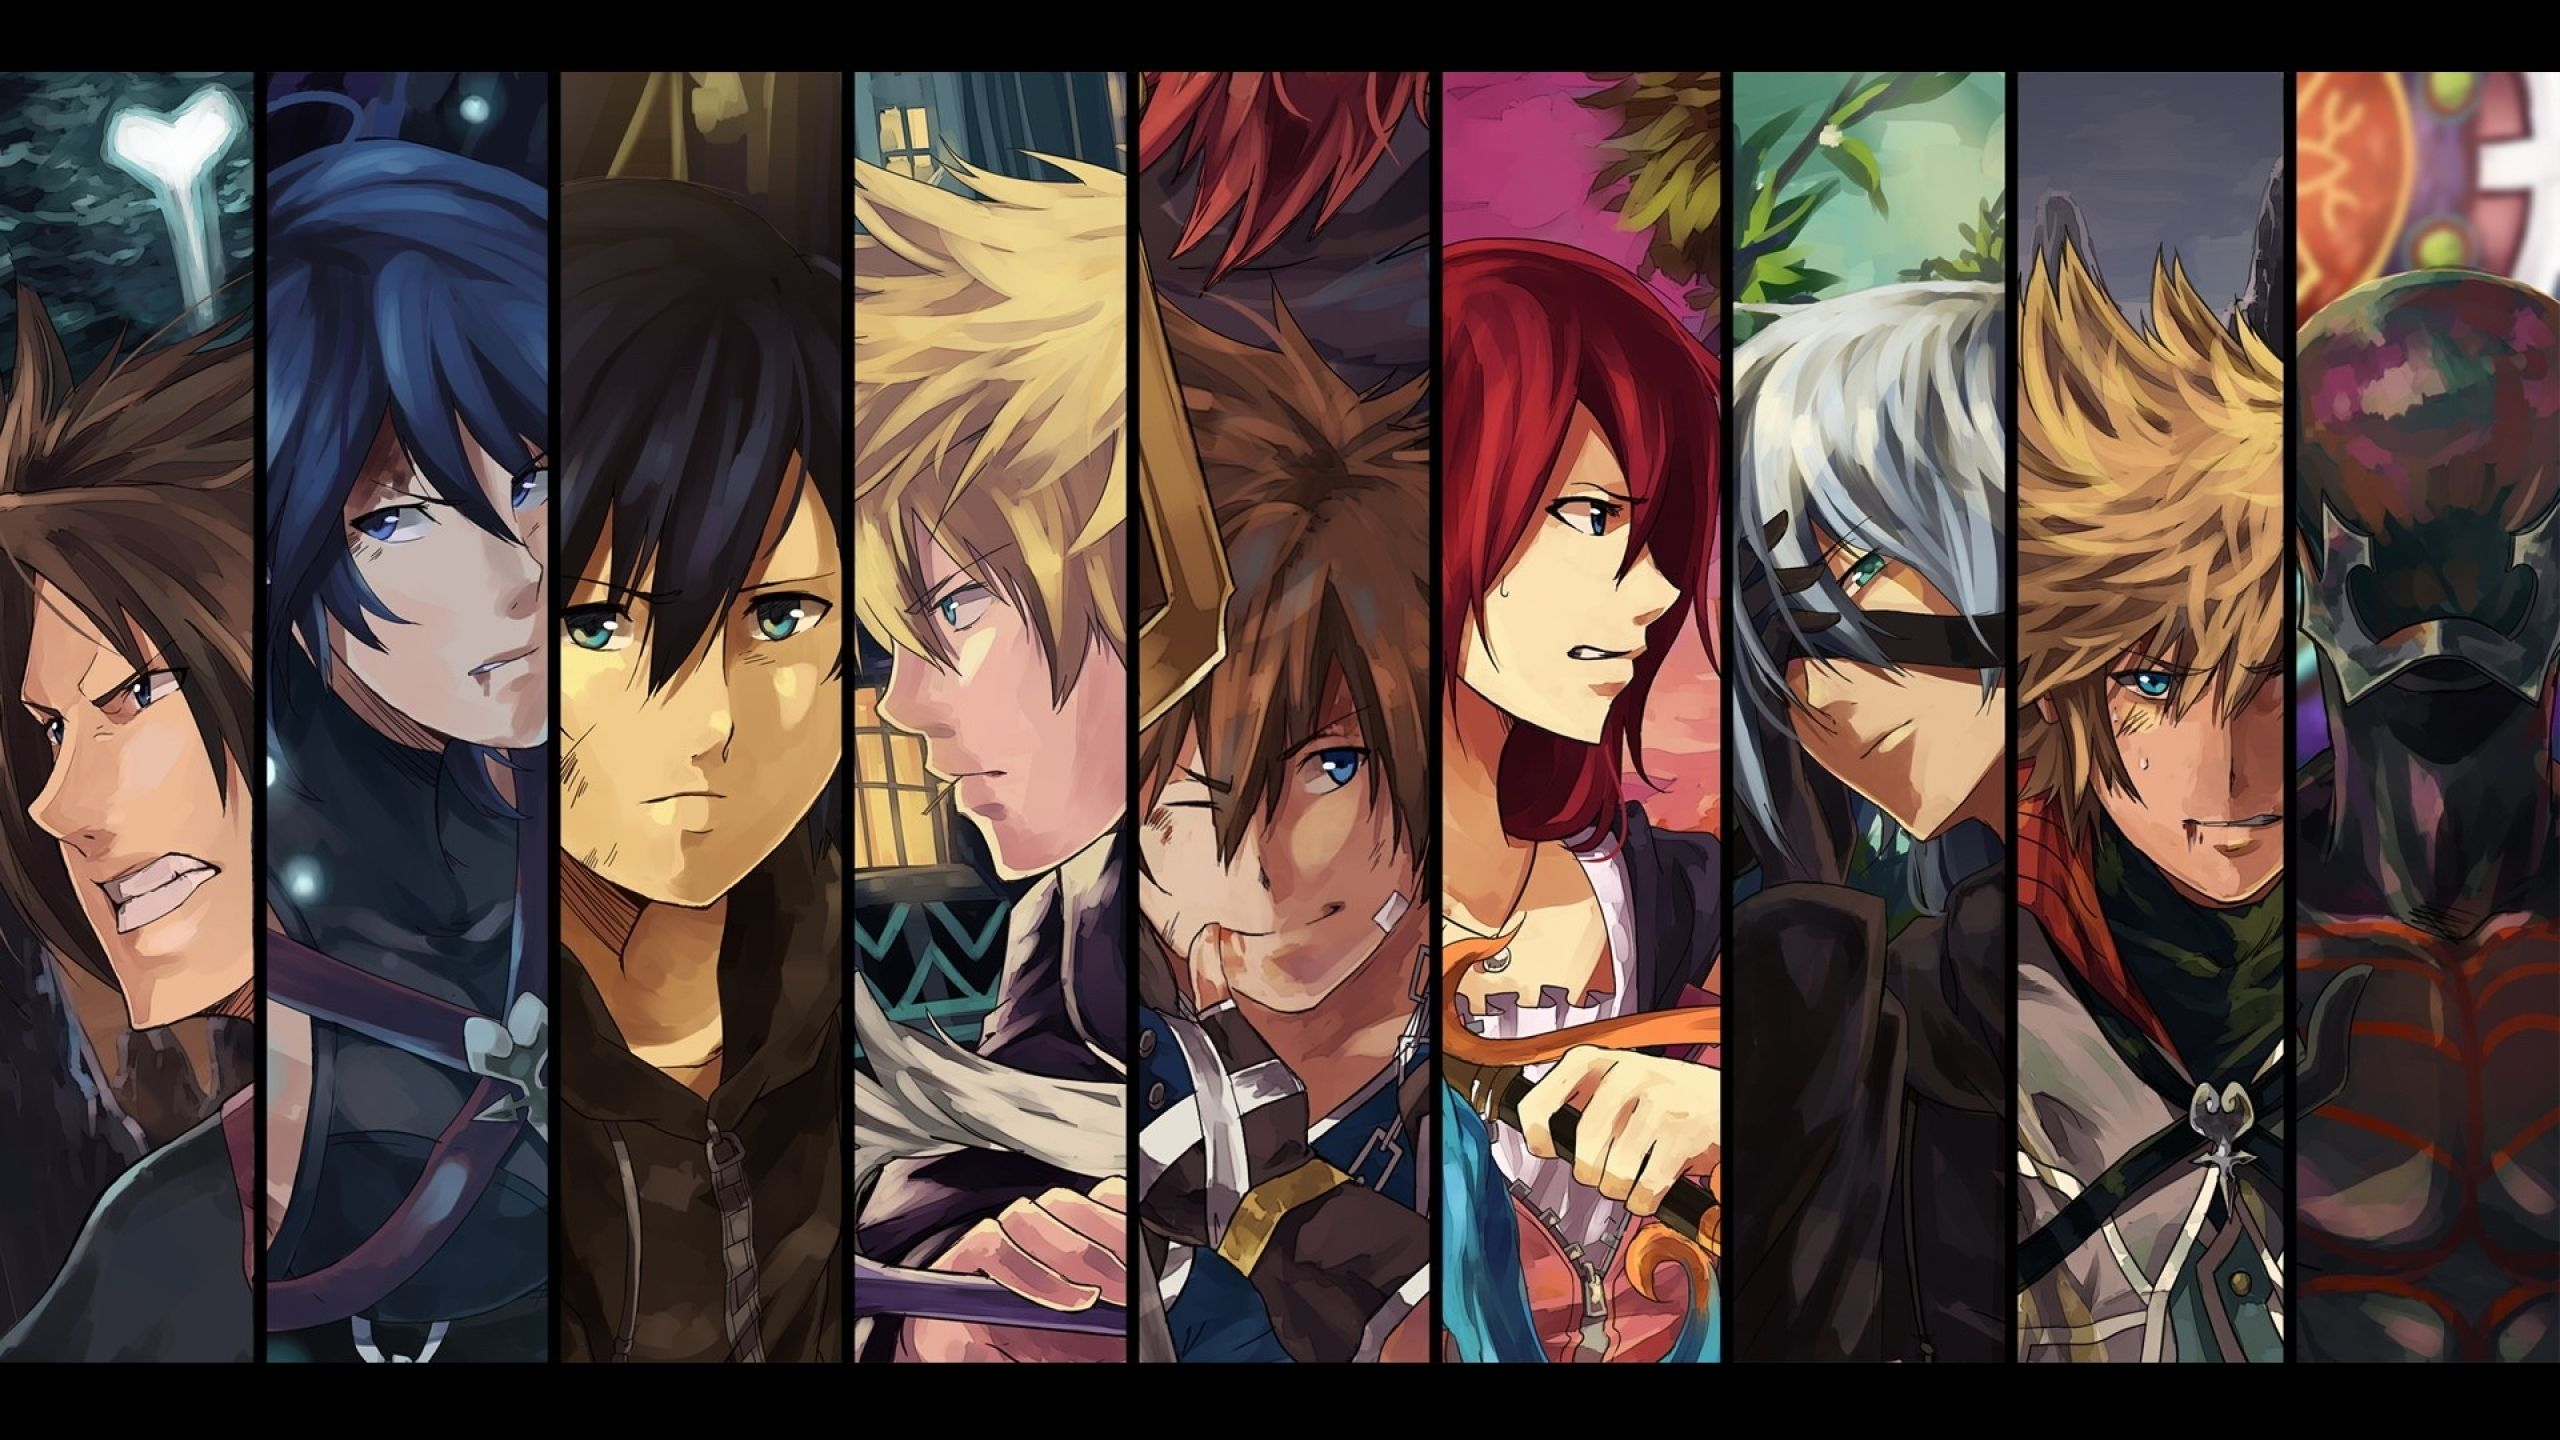 Download Wallpapers Download 2560x1440 Kingdom Hearts Anime